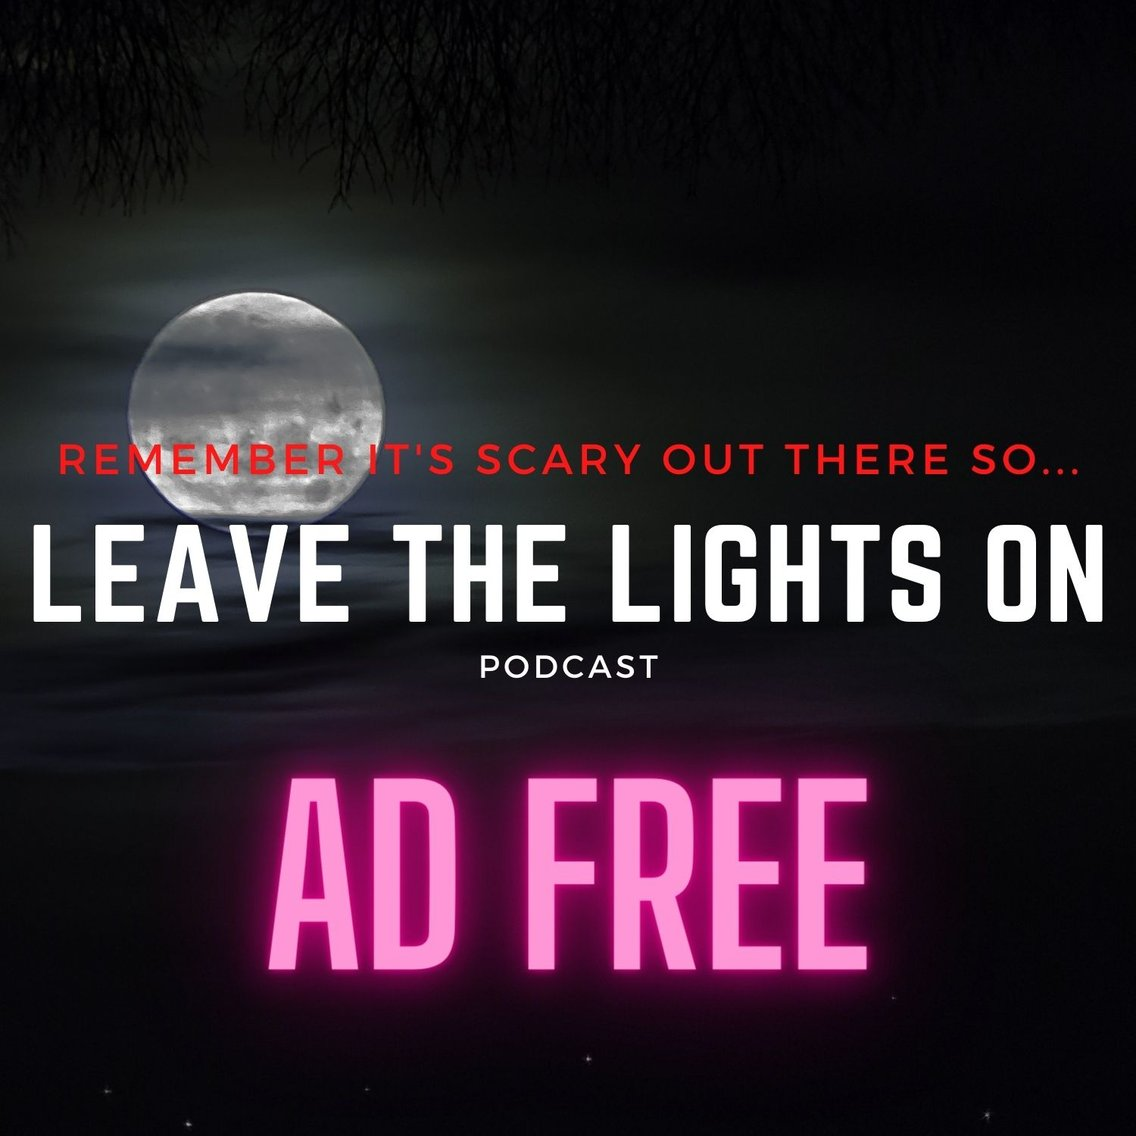 Leave The Lights On - Cover Image